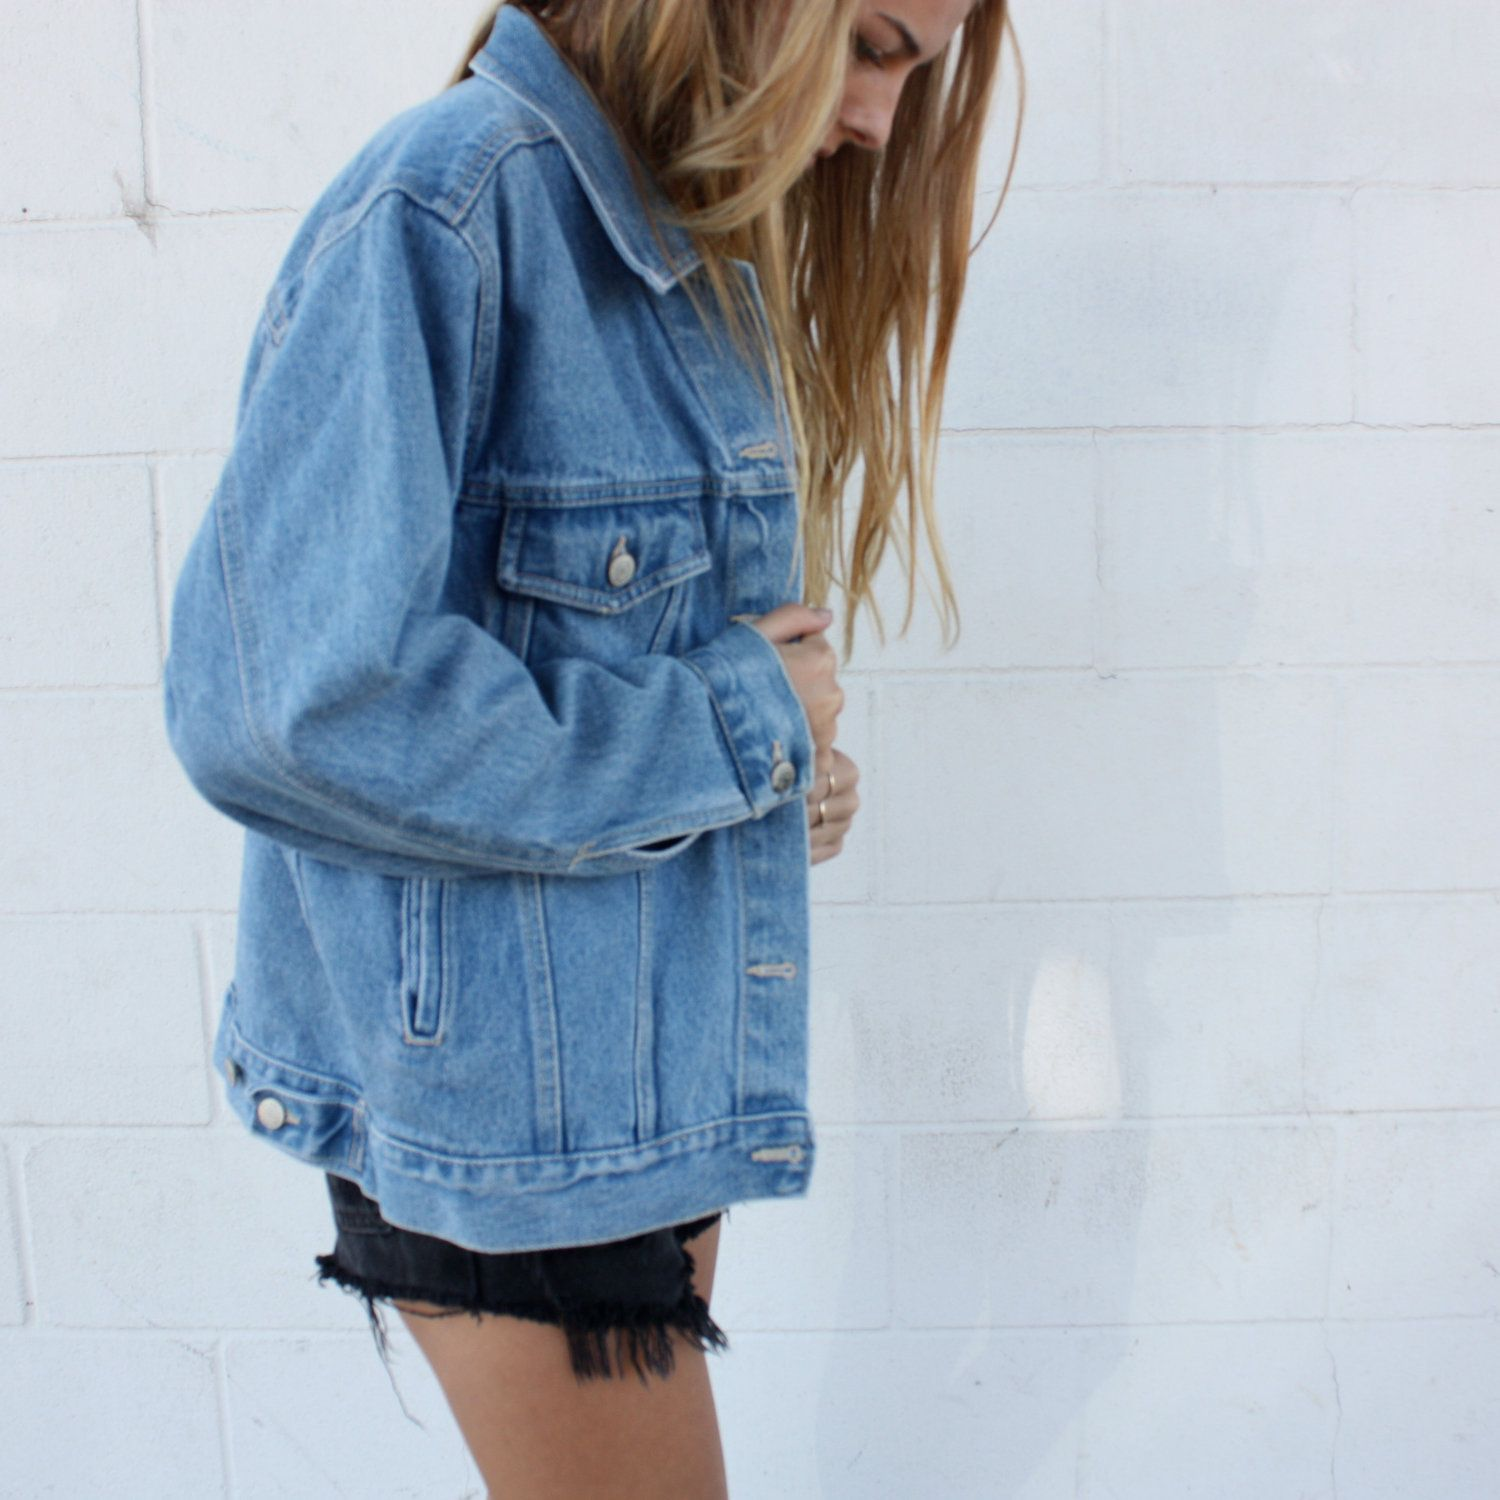 early 90s fashion | Fashion | Pinterest | Denim jackets, 90s ...